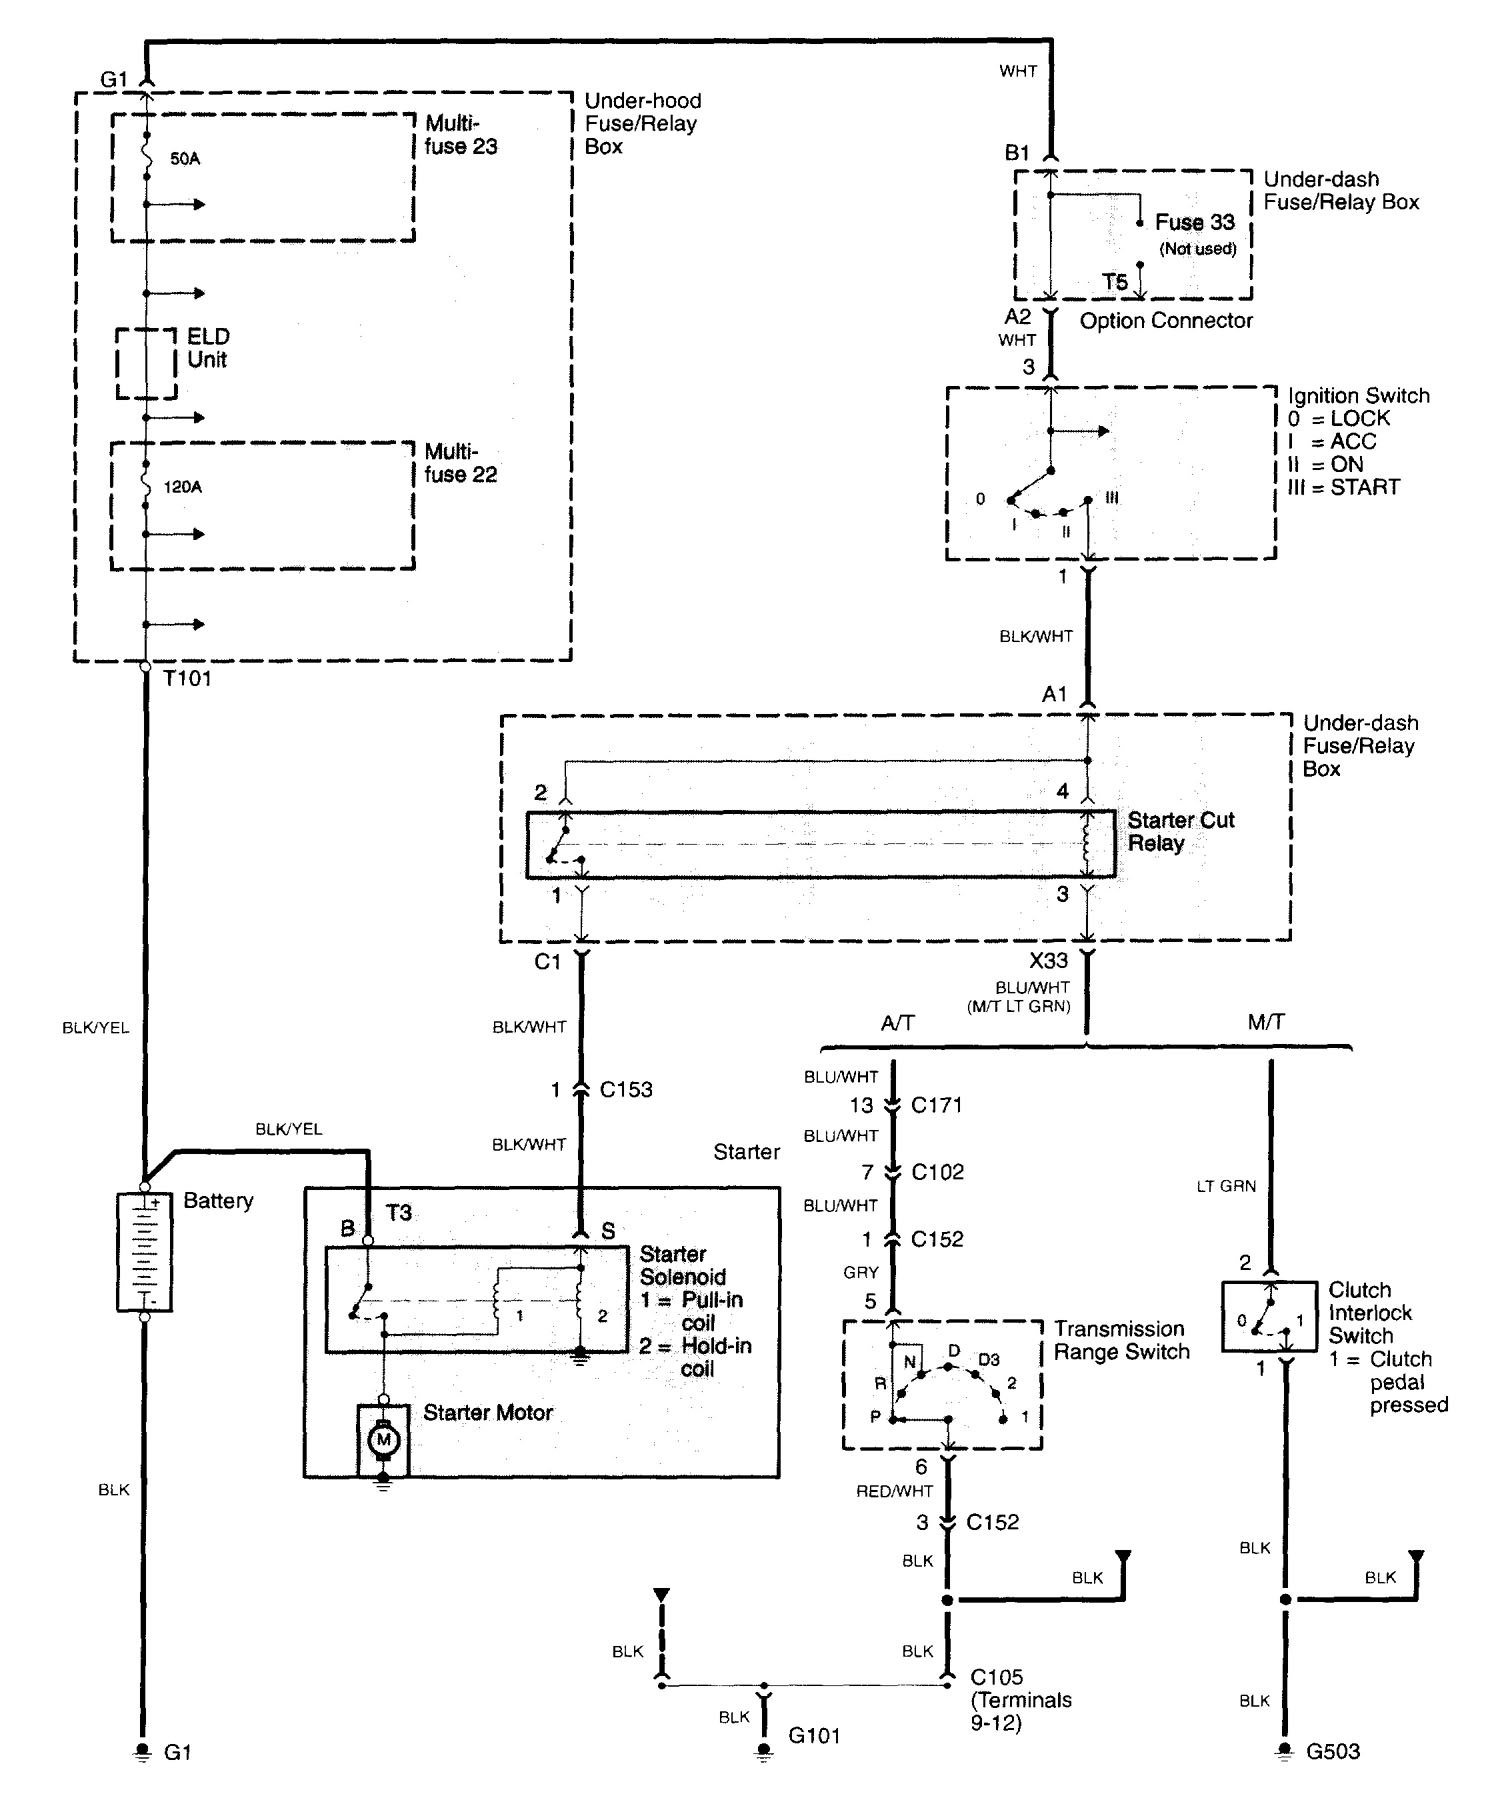 DIAGRAM] 2005 Acura Tl Wiring Diagram FULL Version HD Quality Wiring Diagram  - ORBITALDIAGRAMS.SAINTMIHIEL-TOURISME.FRSaintmihiel-tourisme.fr